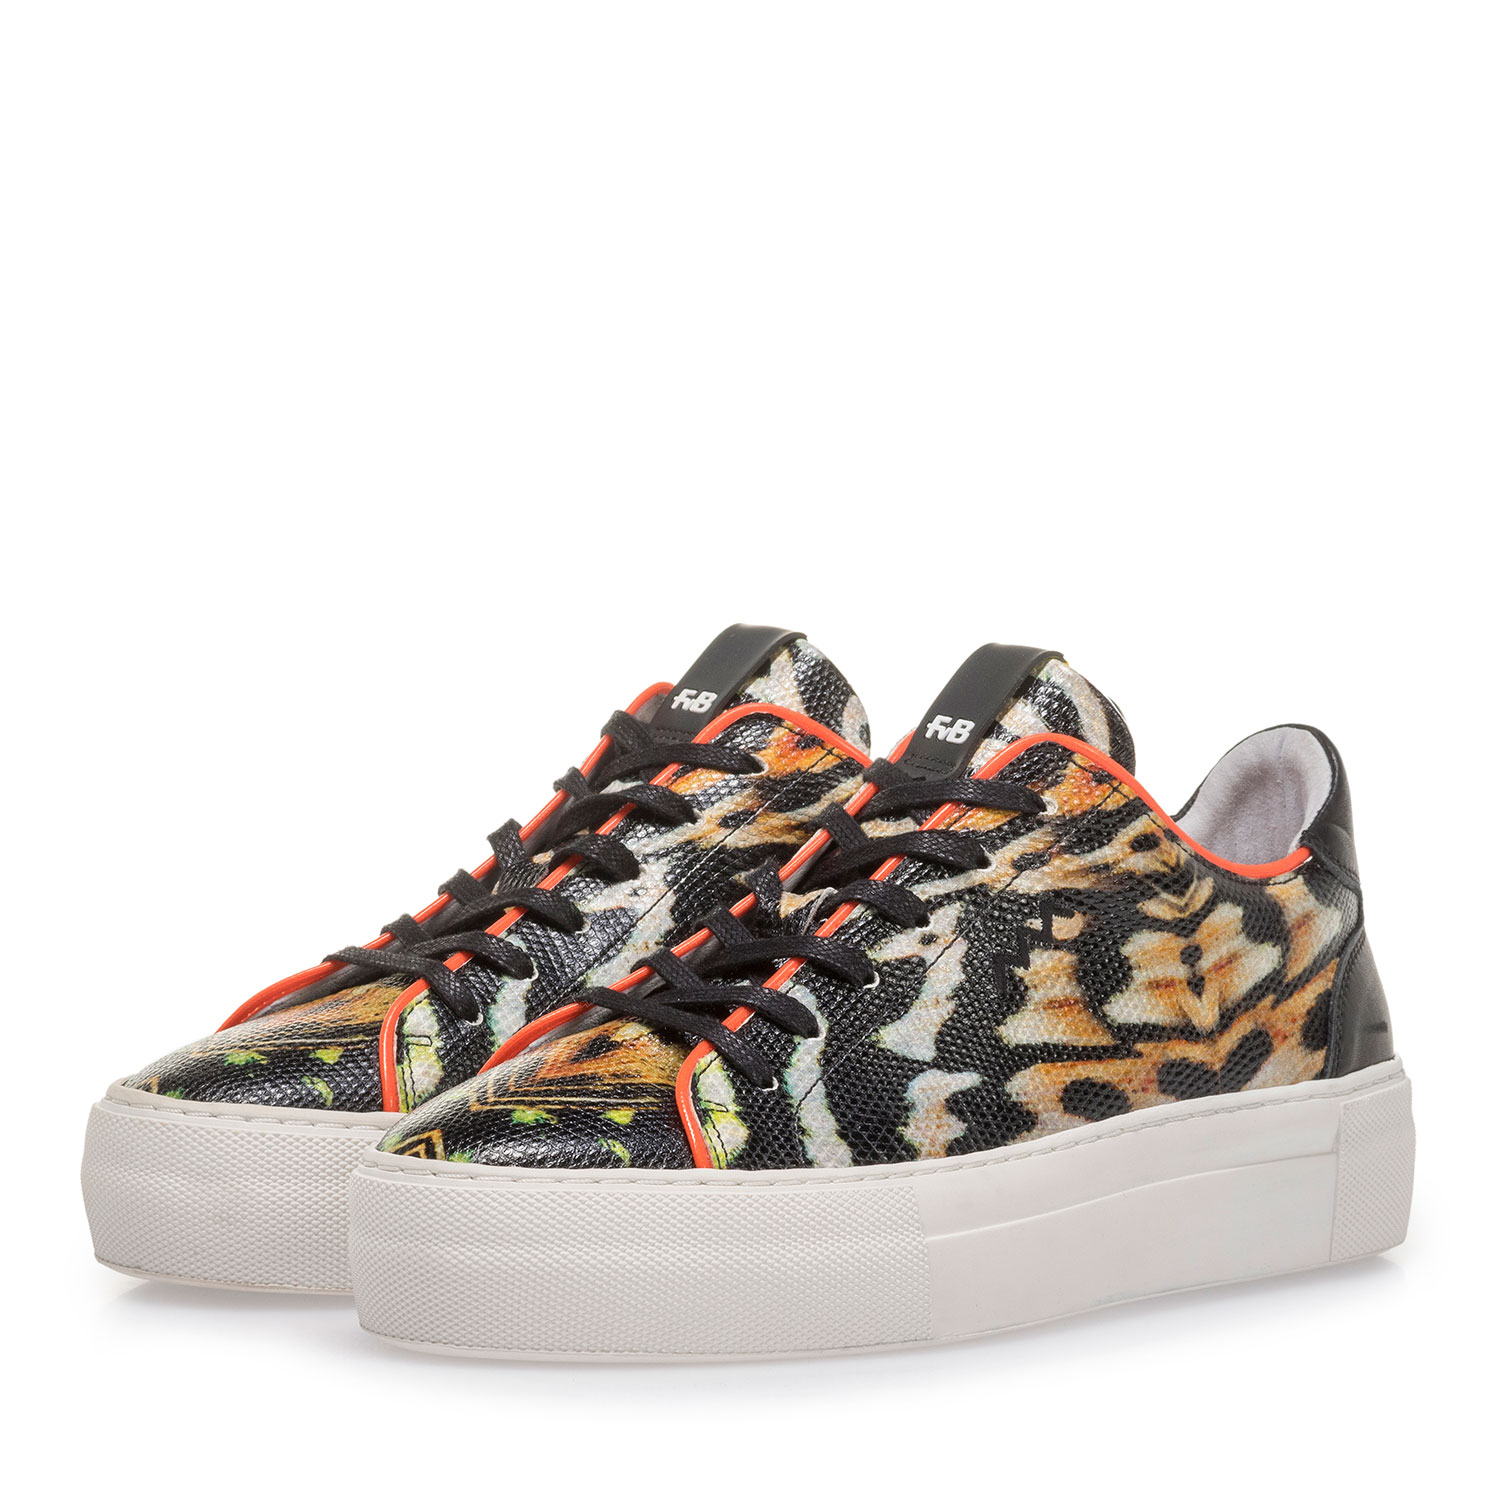 85297/05 - Black leather sneaker with orange-coloured print